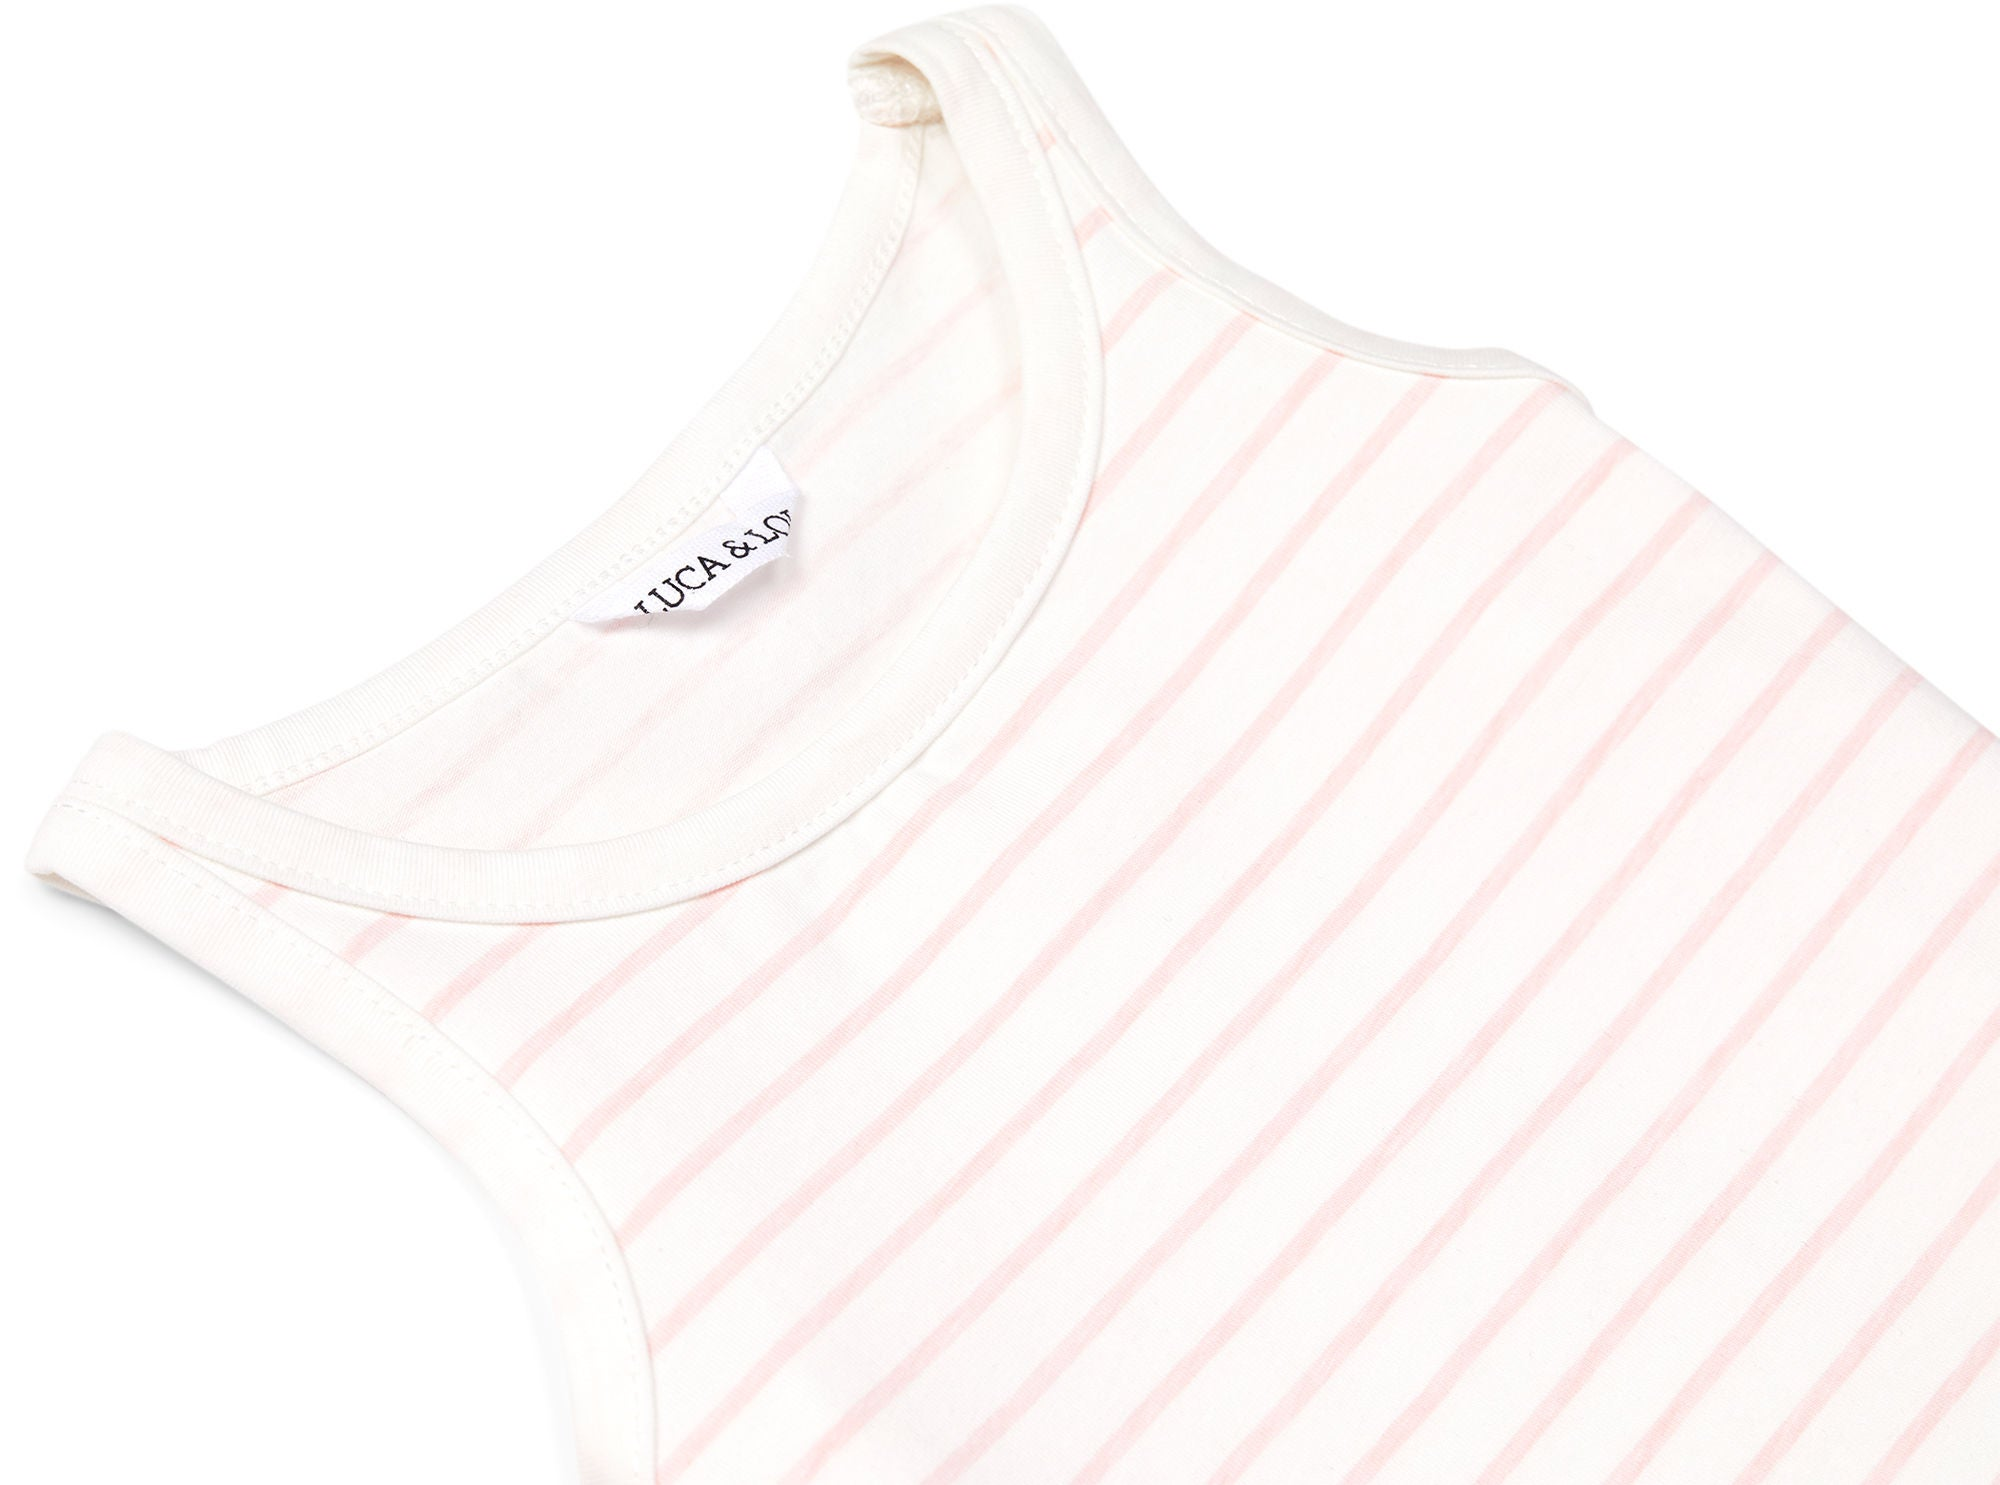 Luca & Lola Jemma Top 2-pak, Pink/Stripes